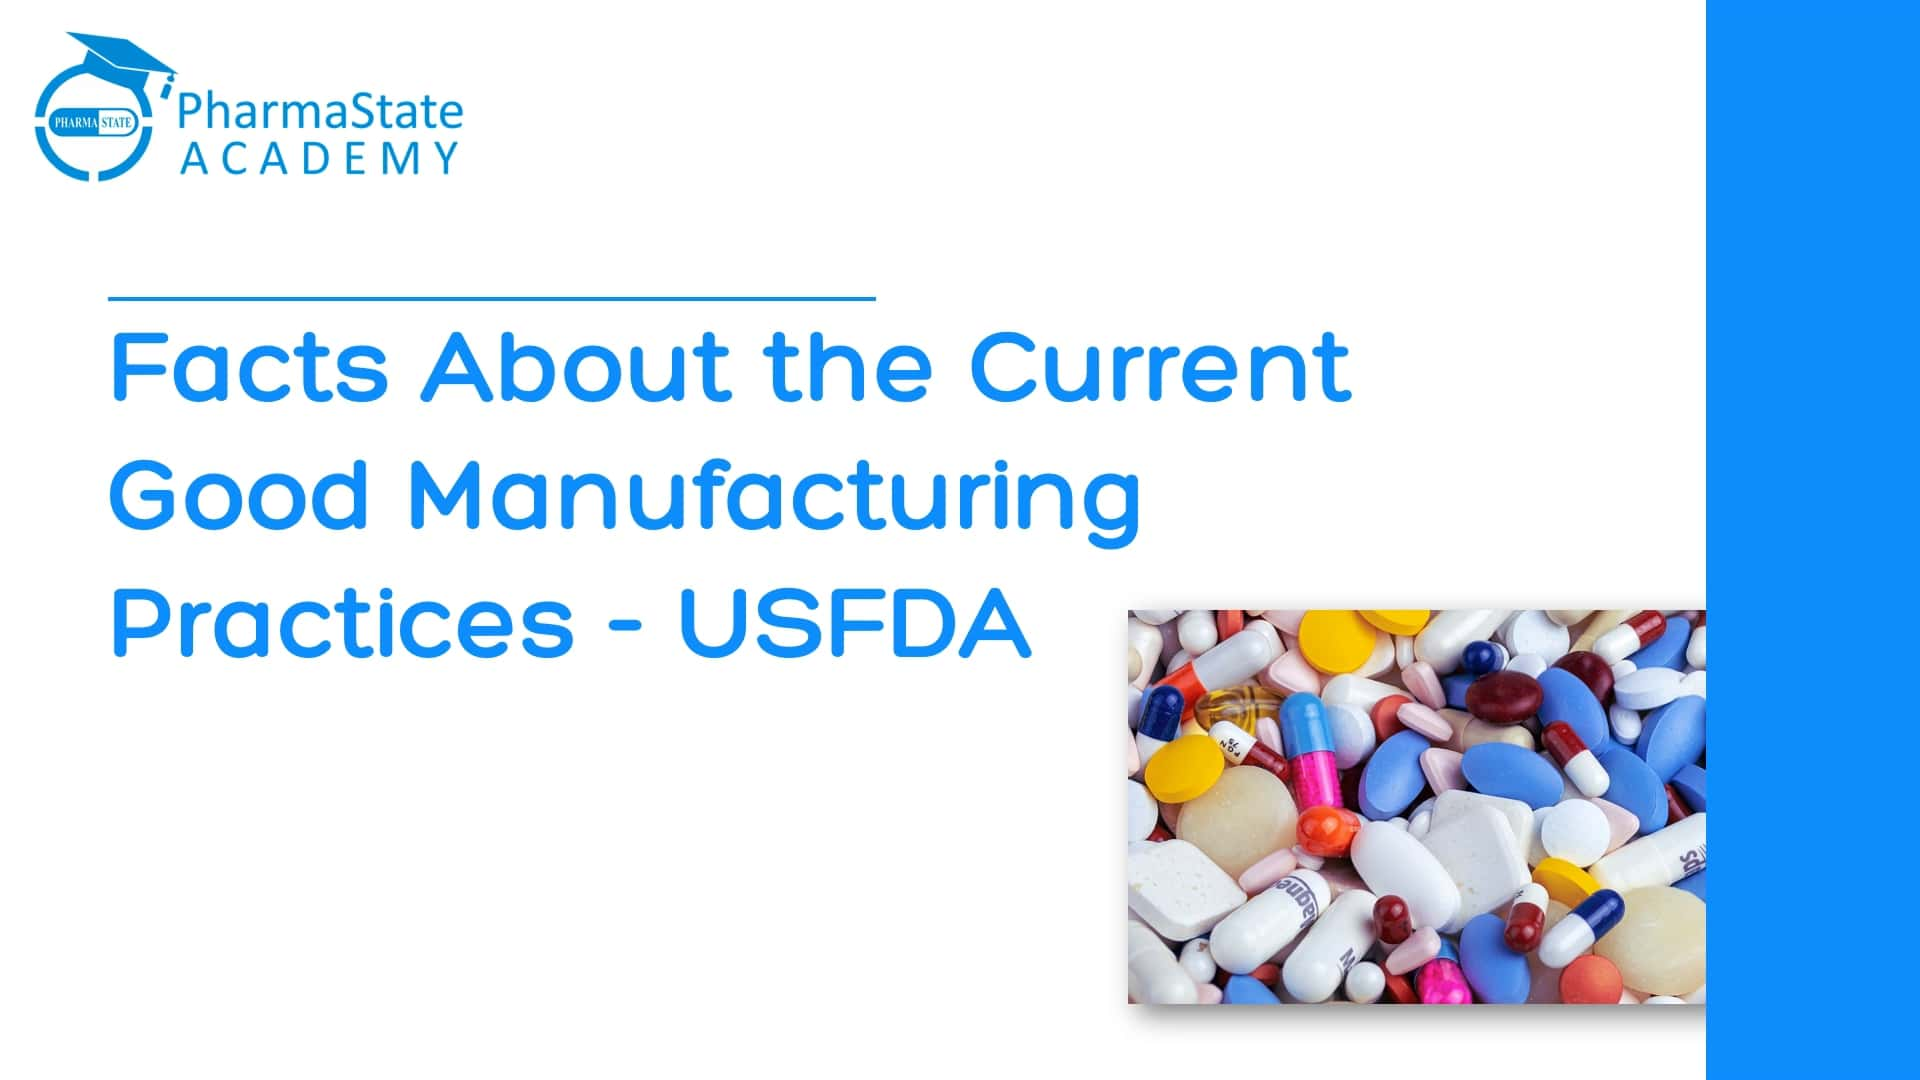 Facts About the Current Good Manufacturing Practices